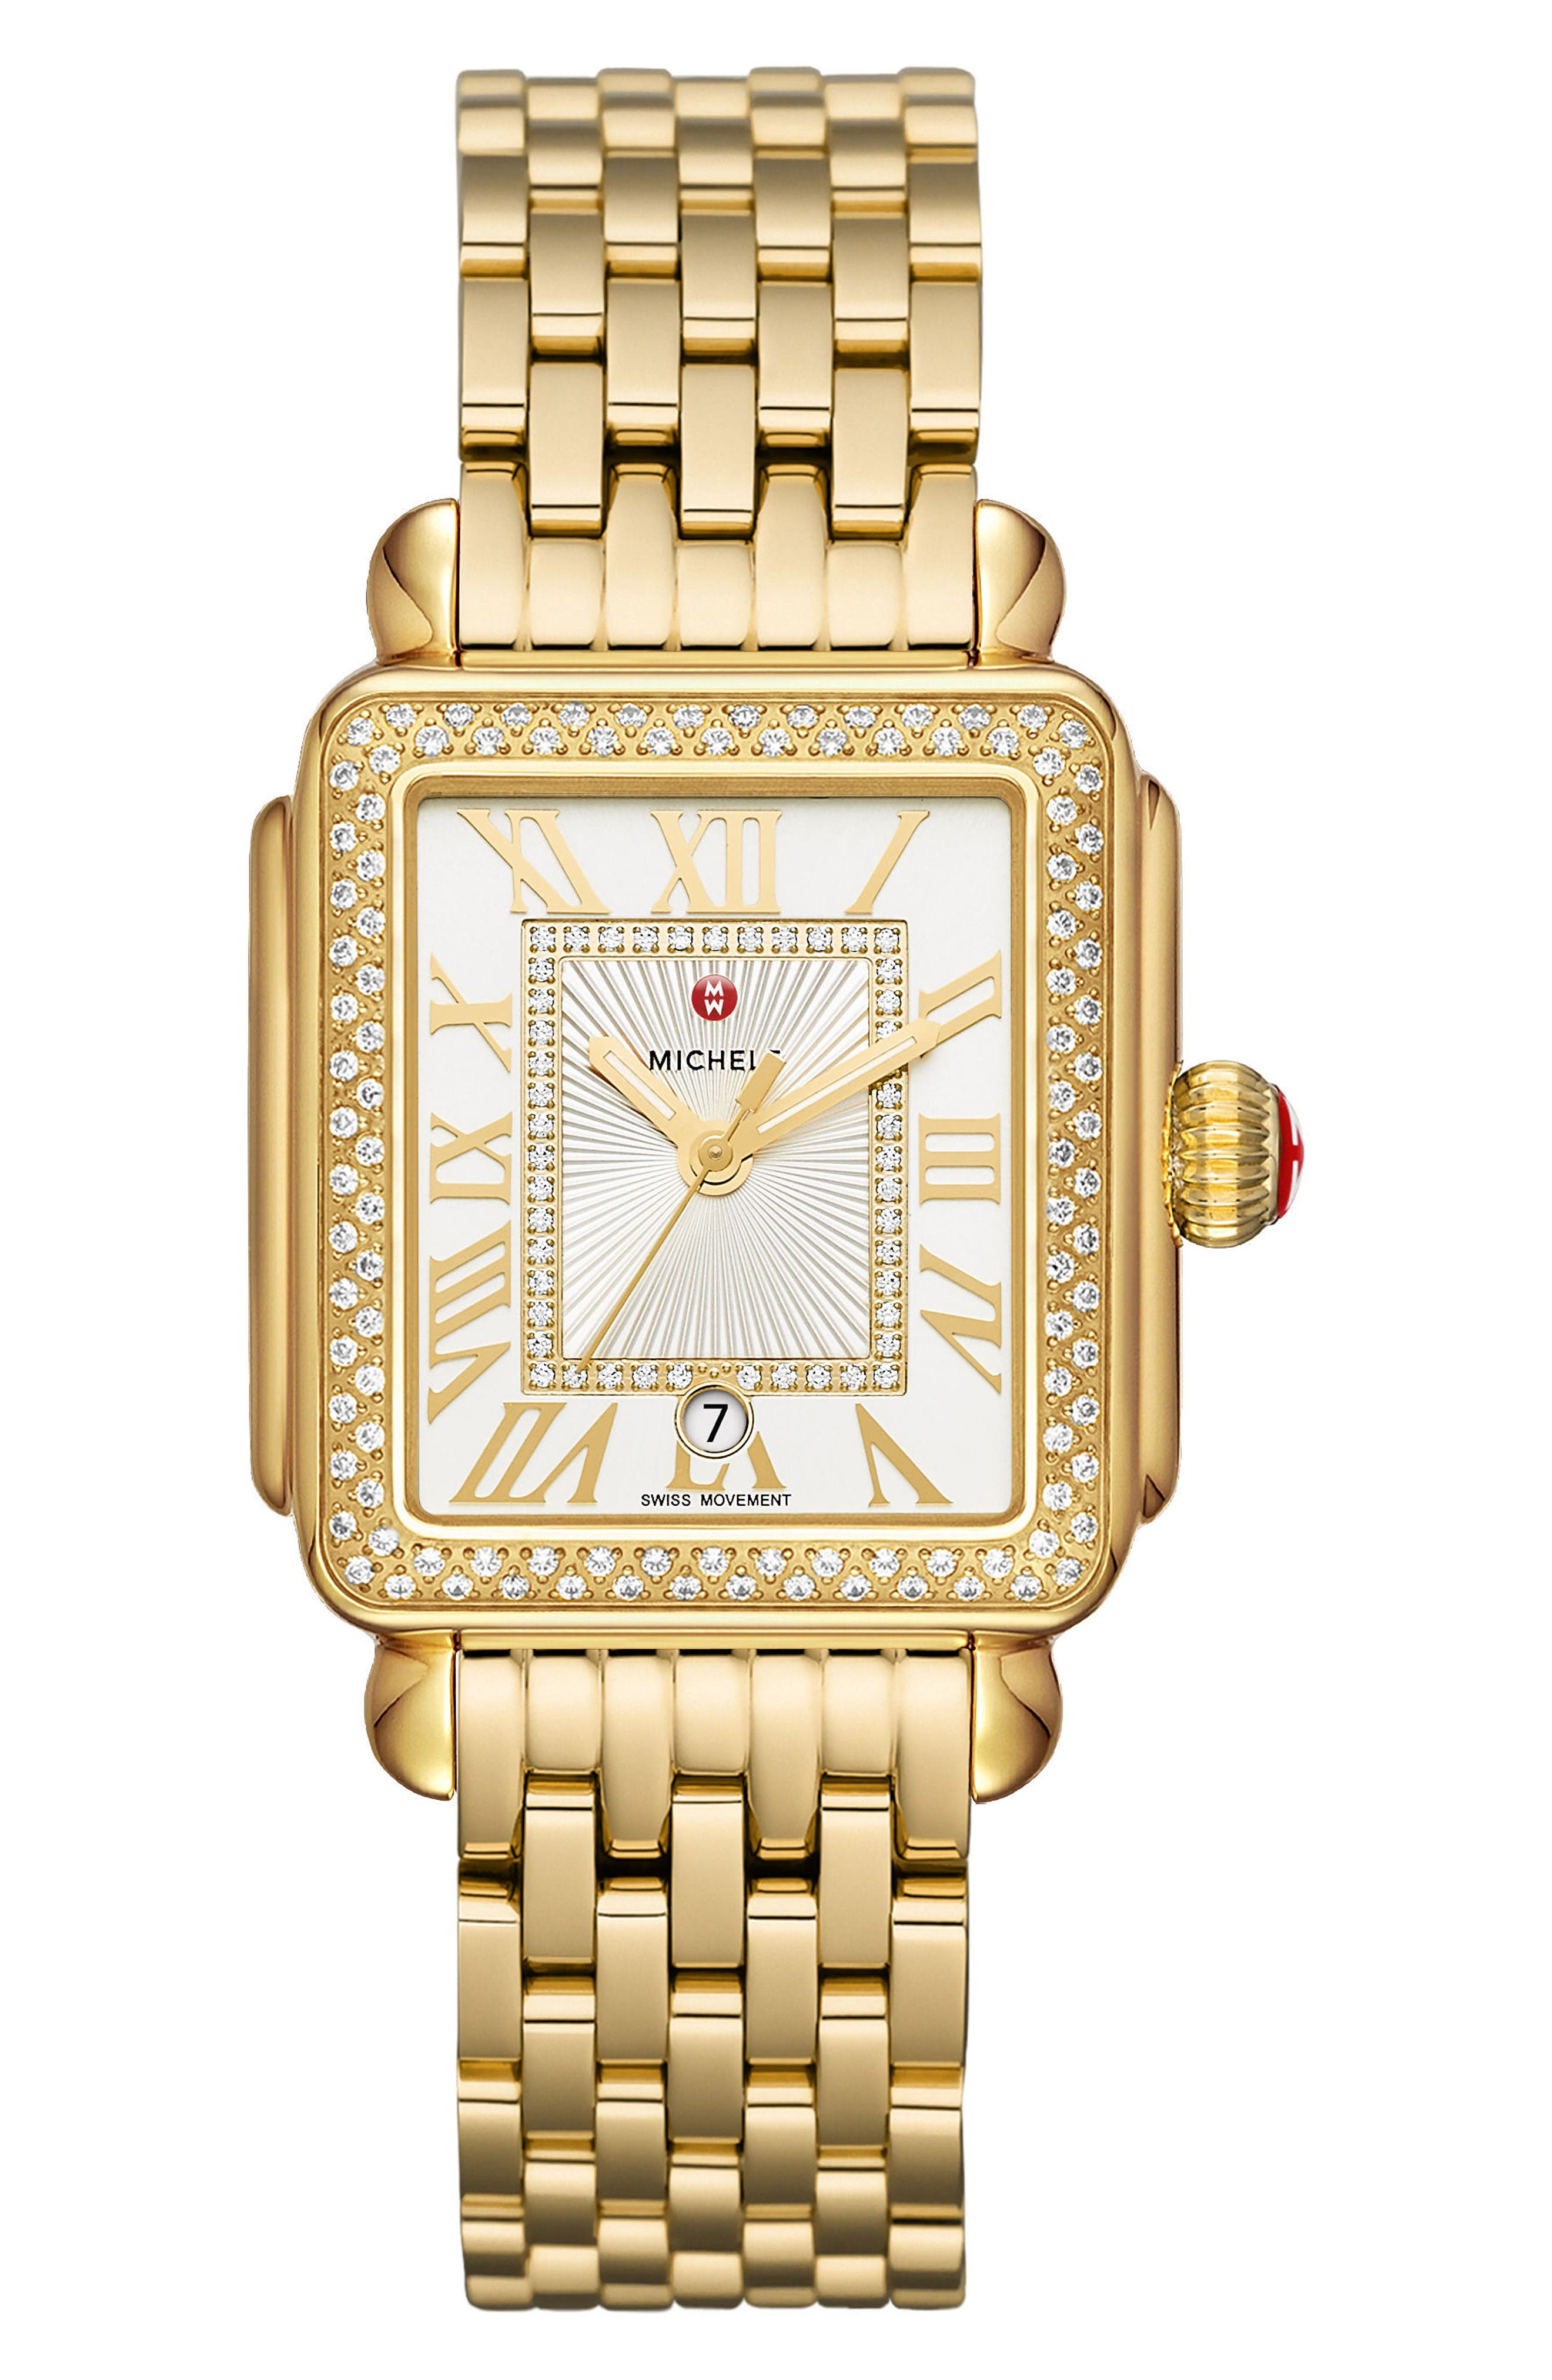 Deco Madison Diamond Dial Watch Case, 33mm x 35mm,                             Alternate thumbnail 2, color,                             GOLD/ WHITE/ GOLD